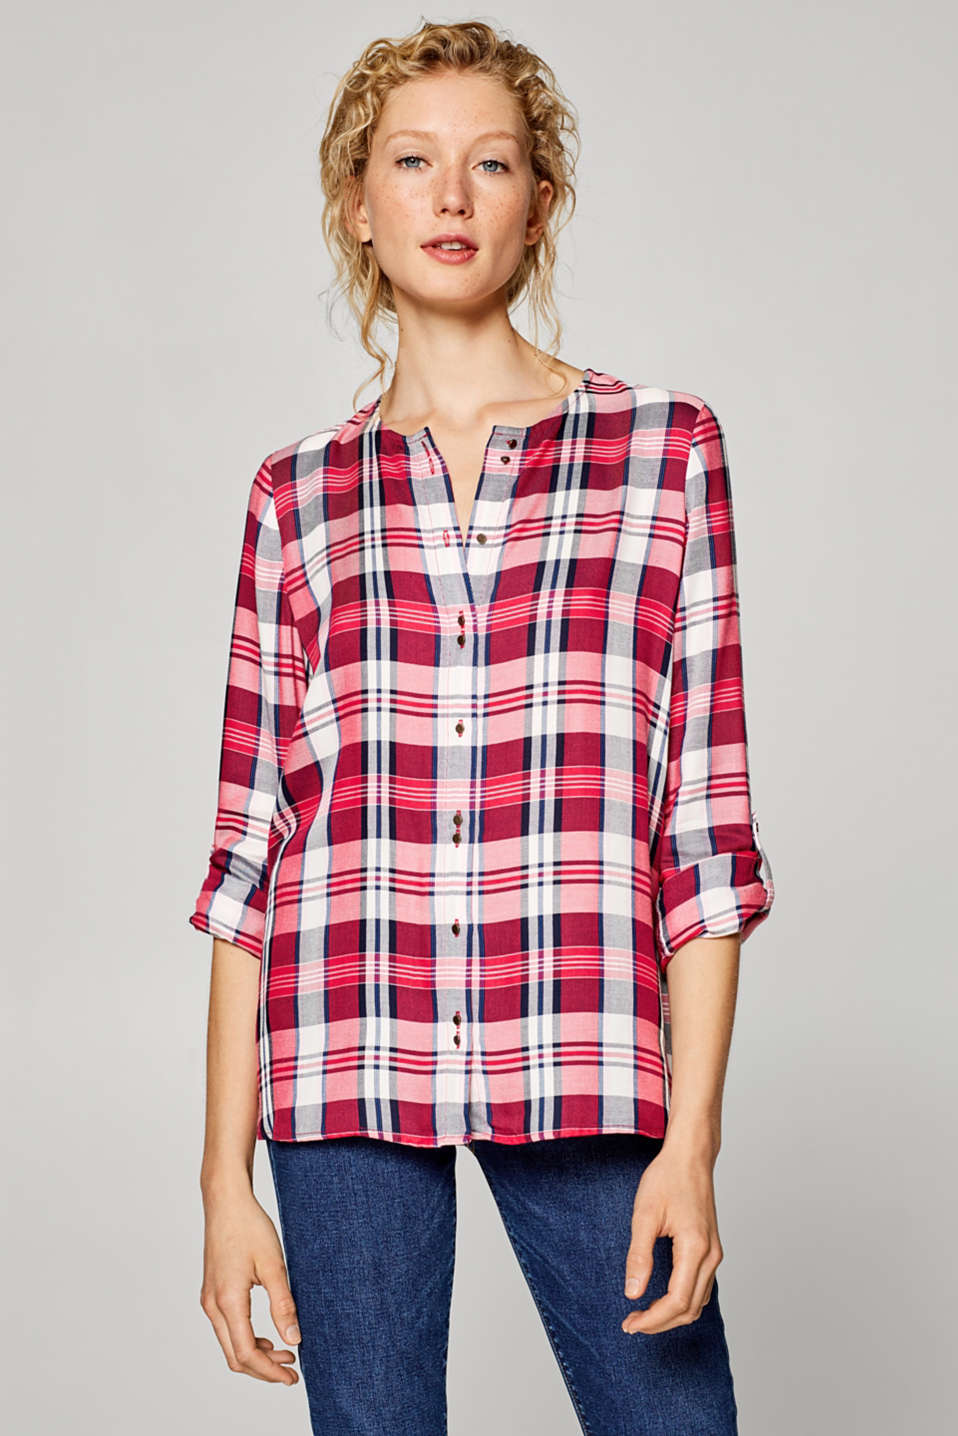 Esprit - Check blouse with pretty button placket